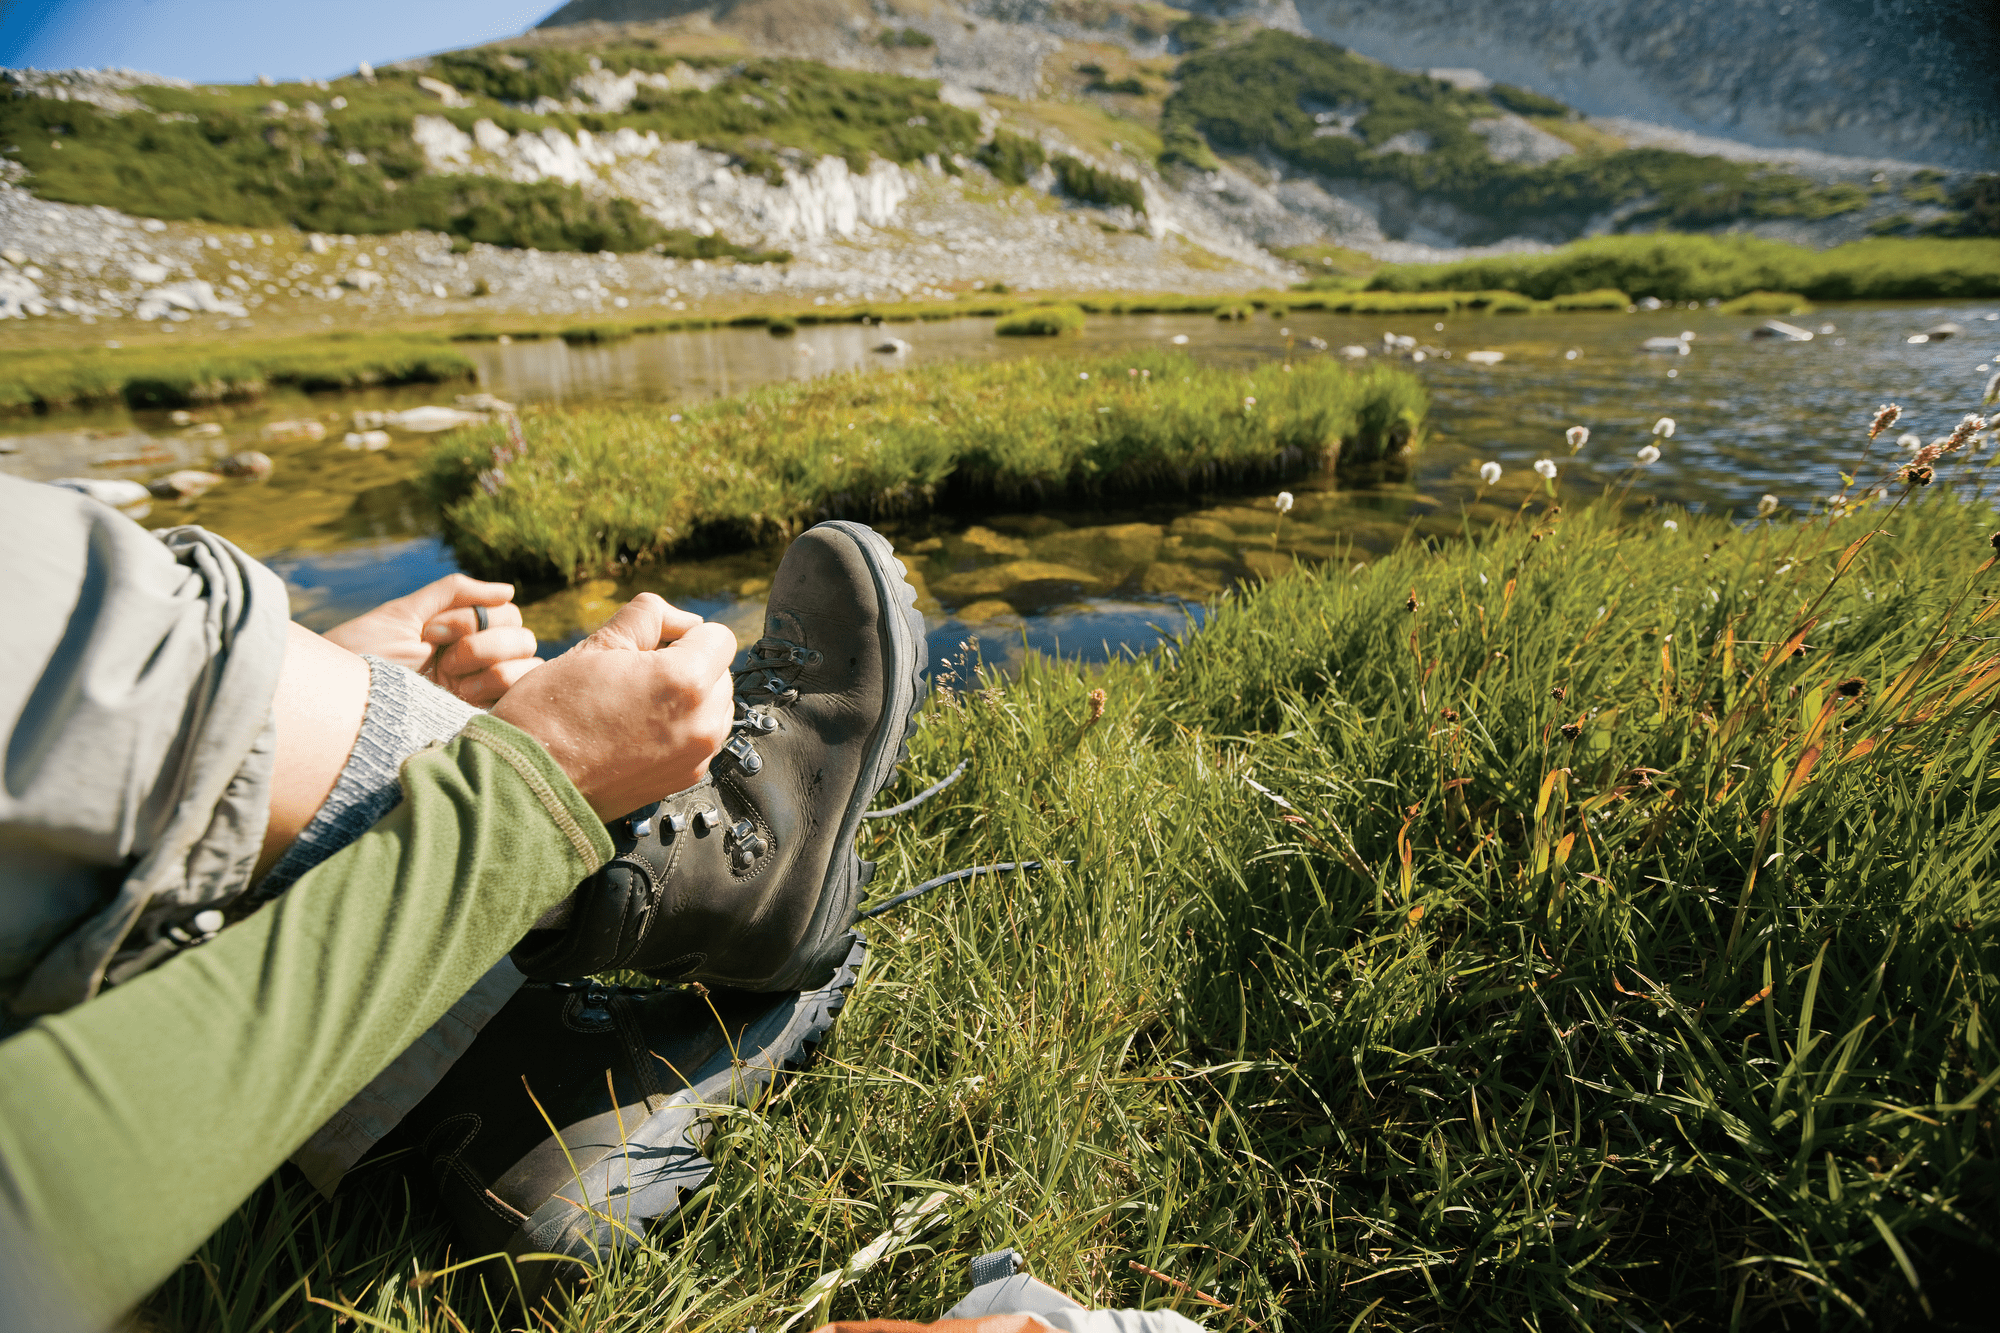 Angler Lacing Up Hiking Boots